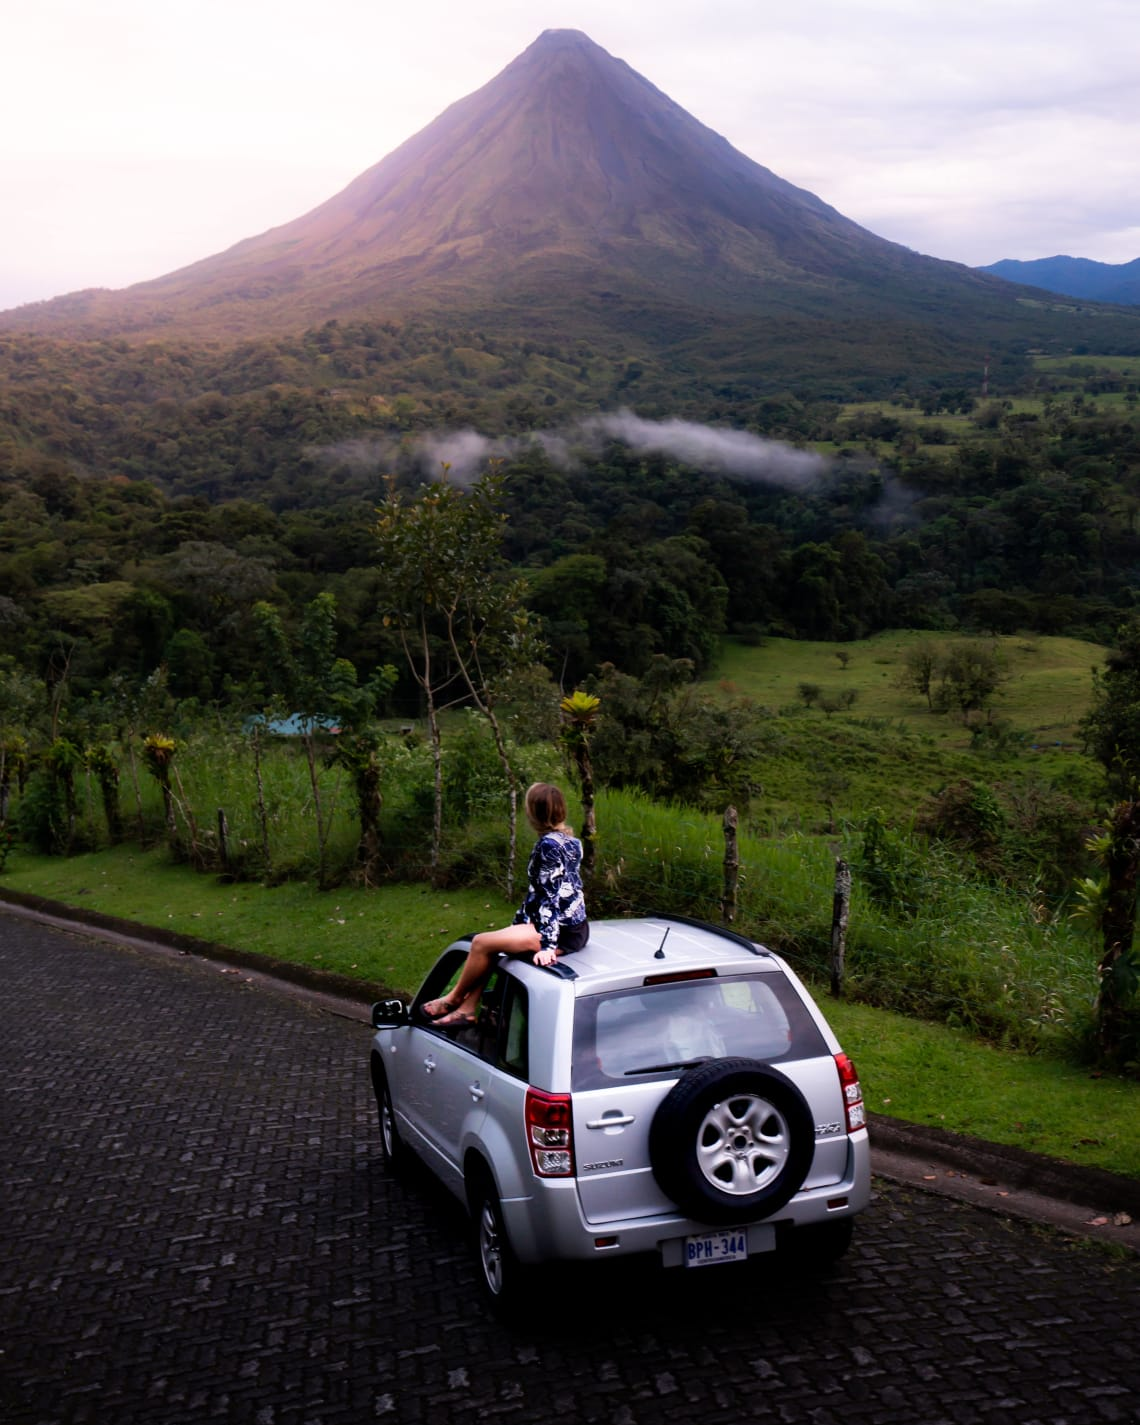 Best places to visit in Costa Rica: Arenal Volcano